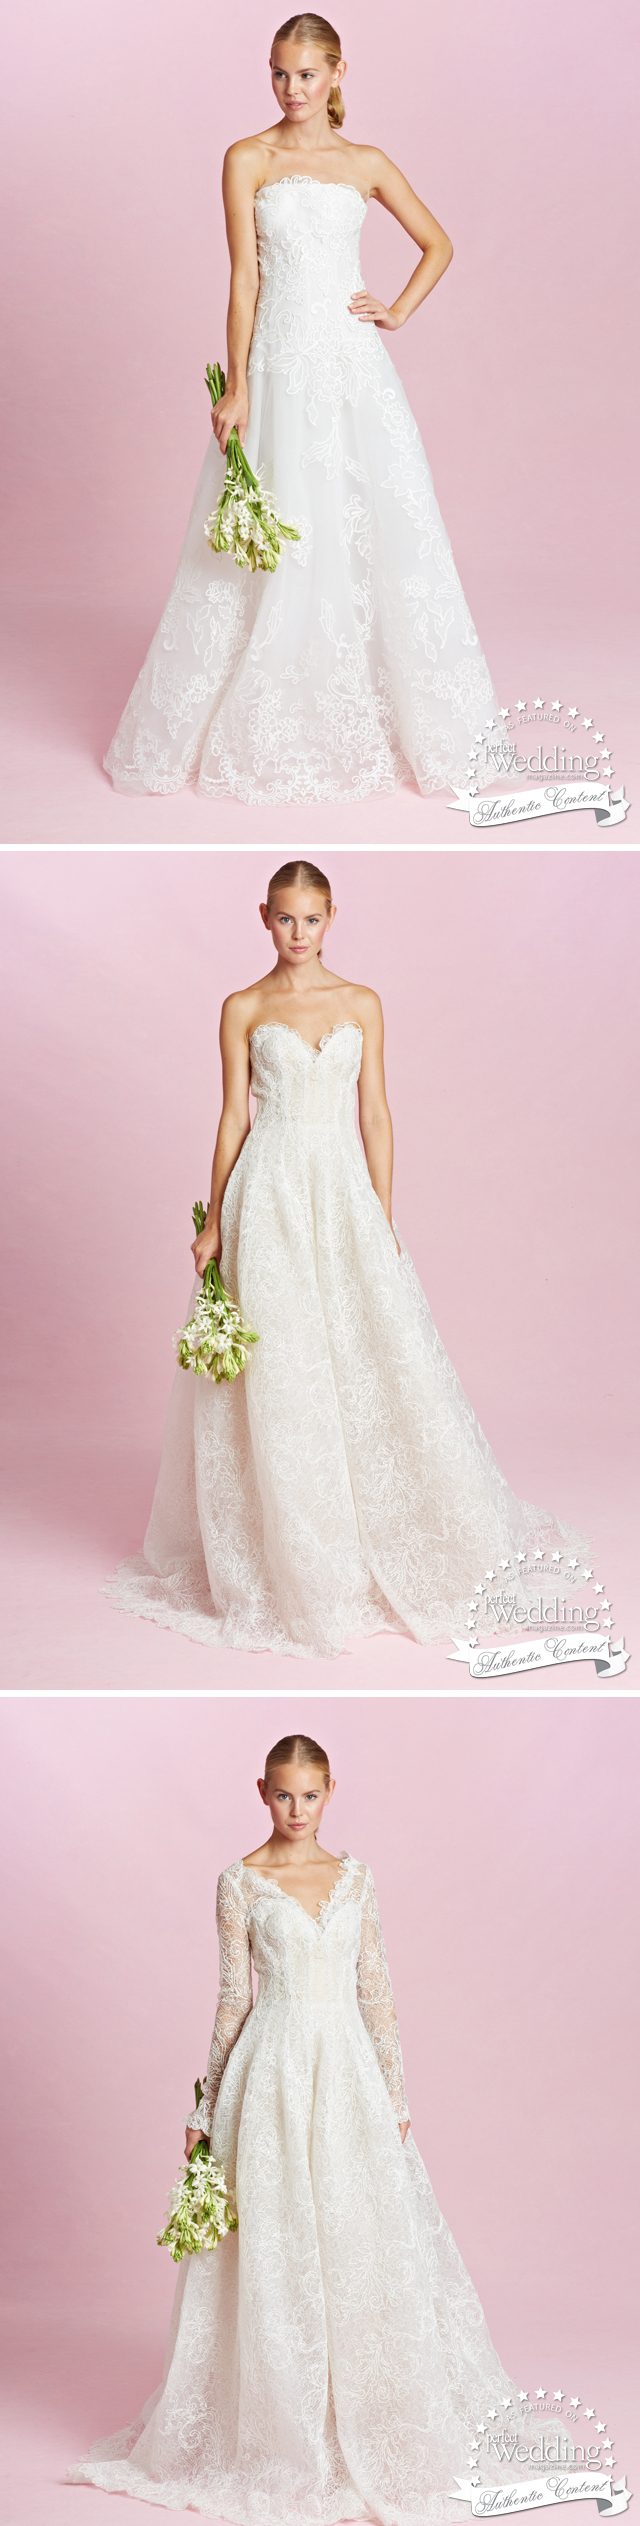 Oscar de la Renta, Oscar de la Renta Fall 2015 Bridal Collection, Fall Bridal Trends, Perfect Wedding Magazine, Perfect Wedding Magazine Blog